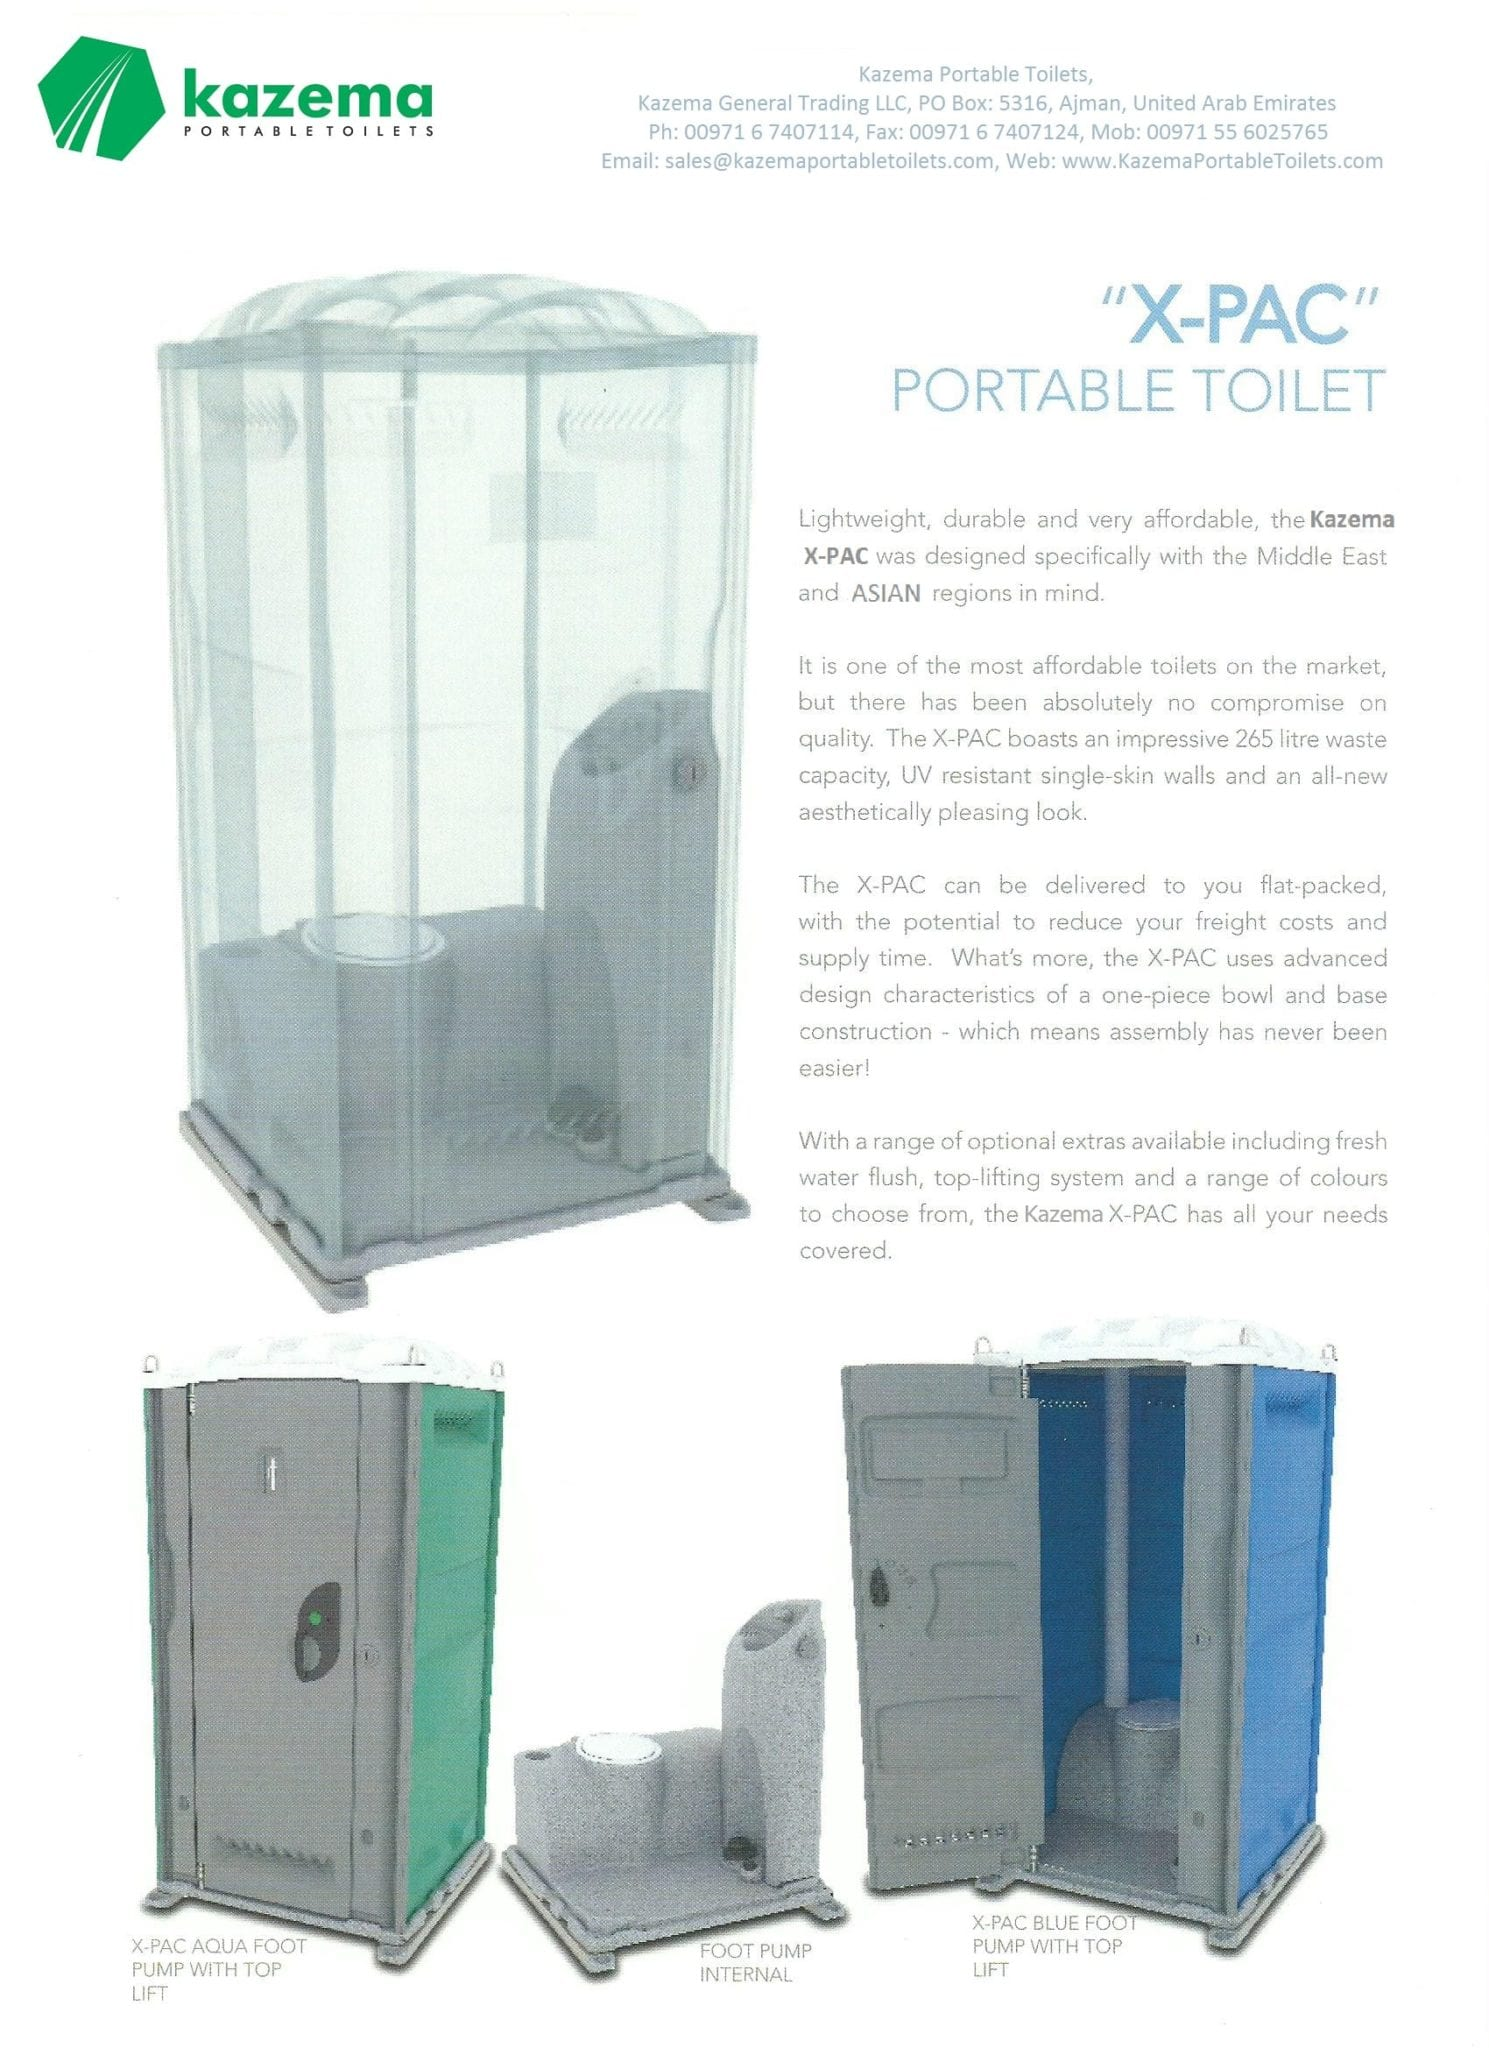 Plastic Toilet with Flush and wash | Kazema Portable Toilets